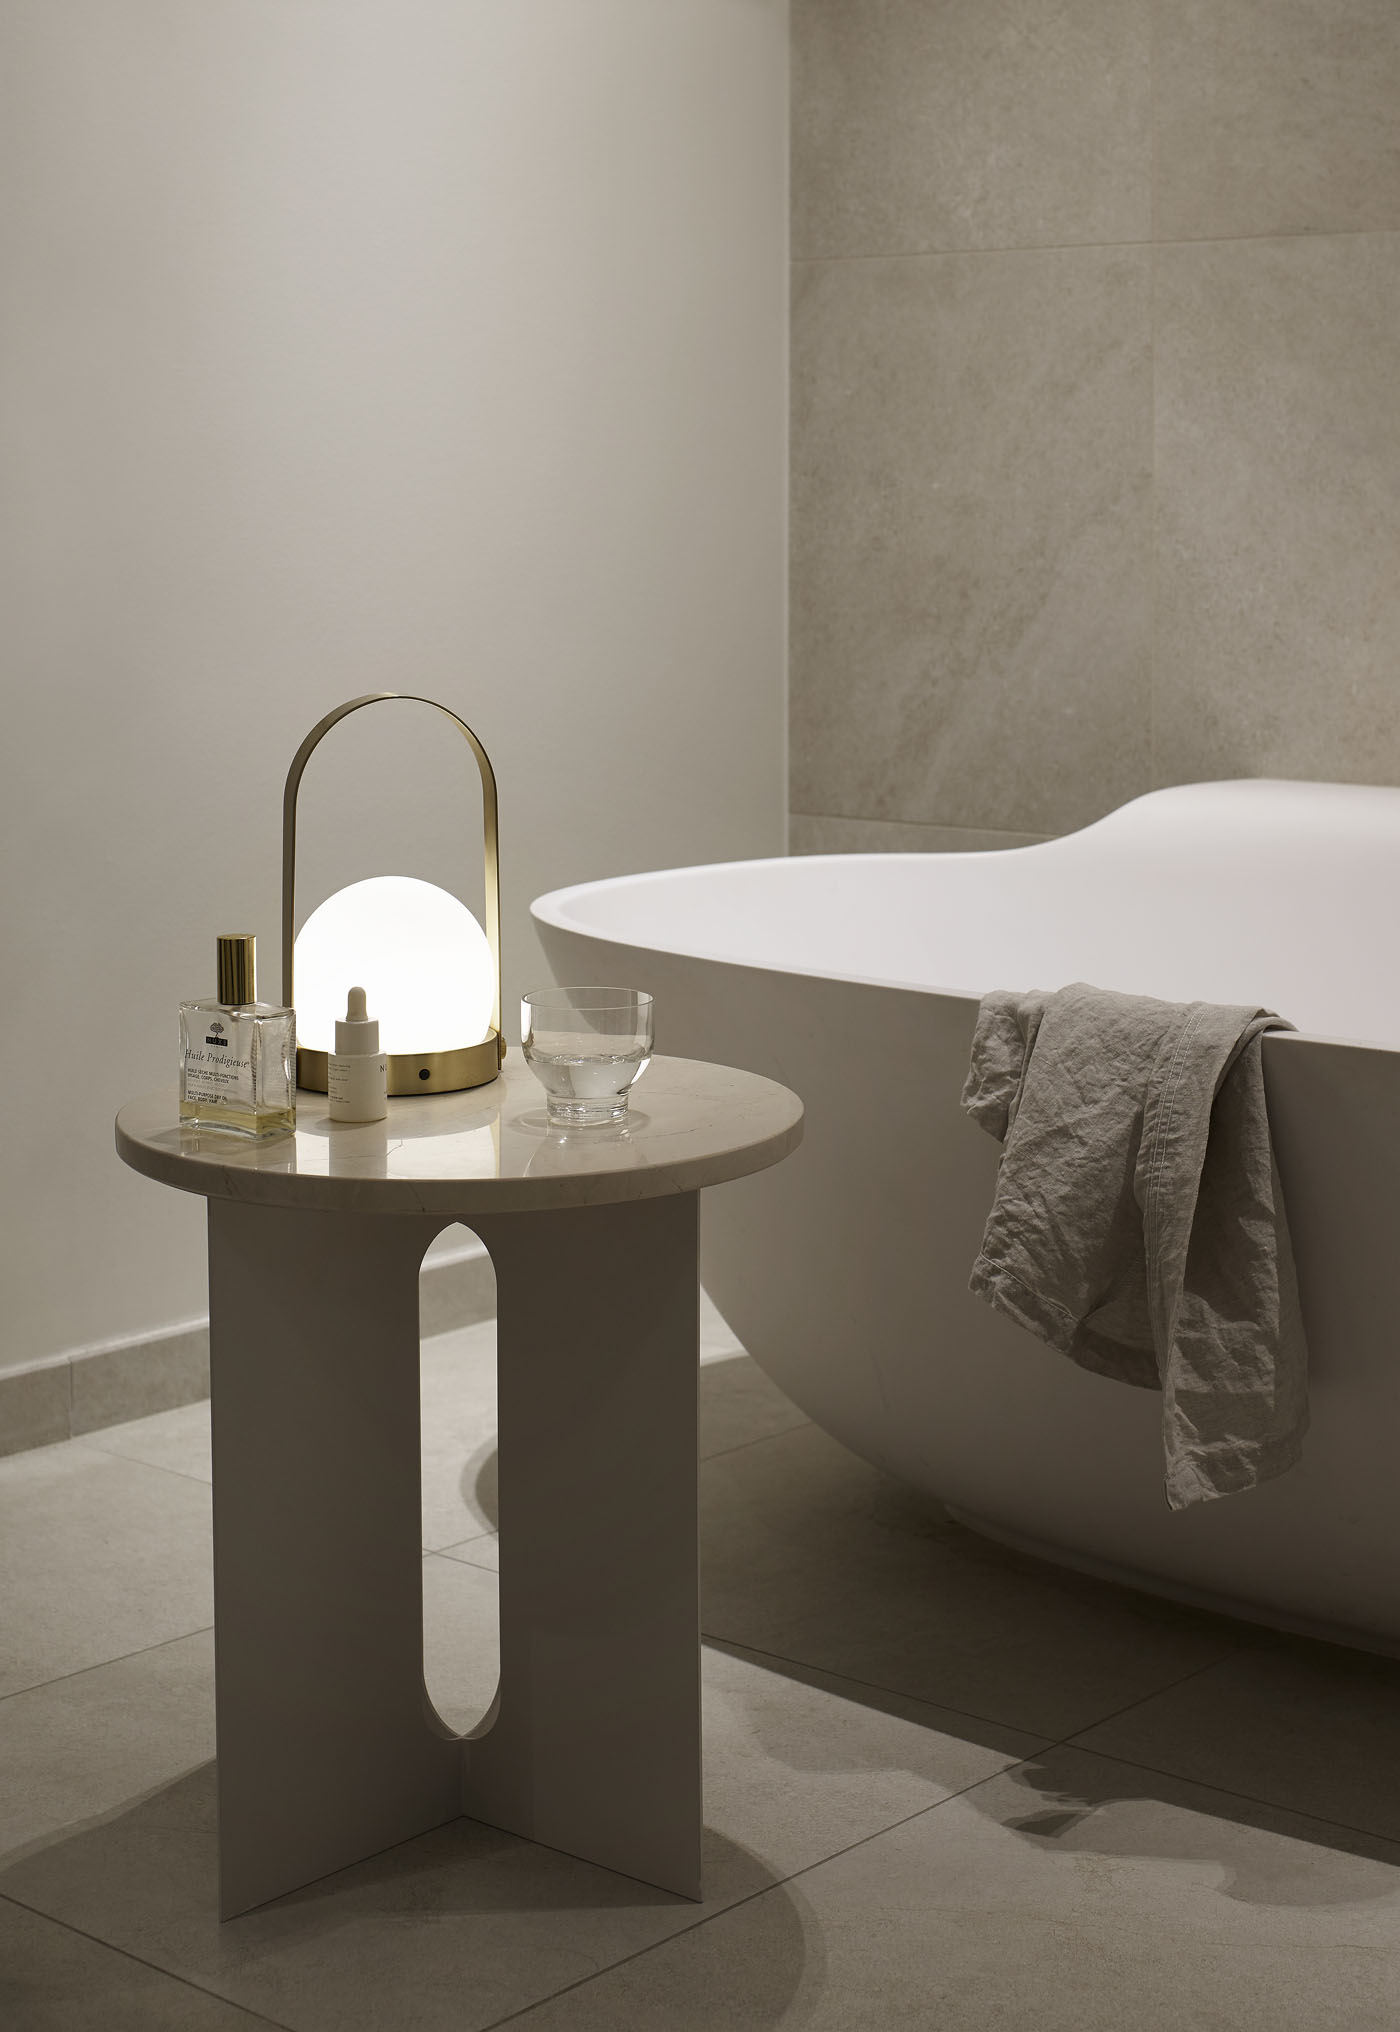 Contemporary minimalist bathroom in soft, earthy neutrals   How to design a lighting scheme that works for you   These Four Walls blog